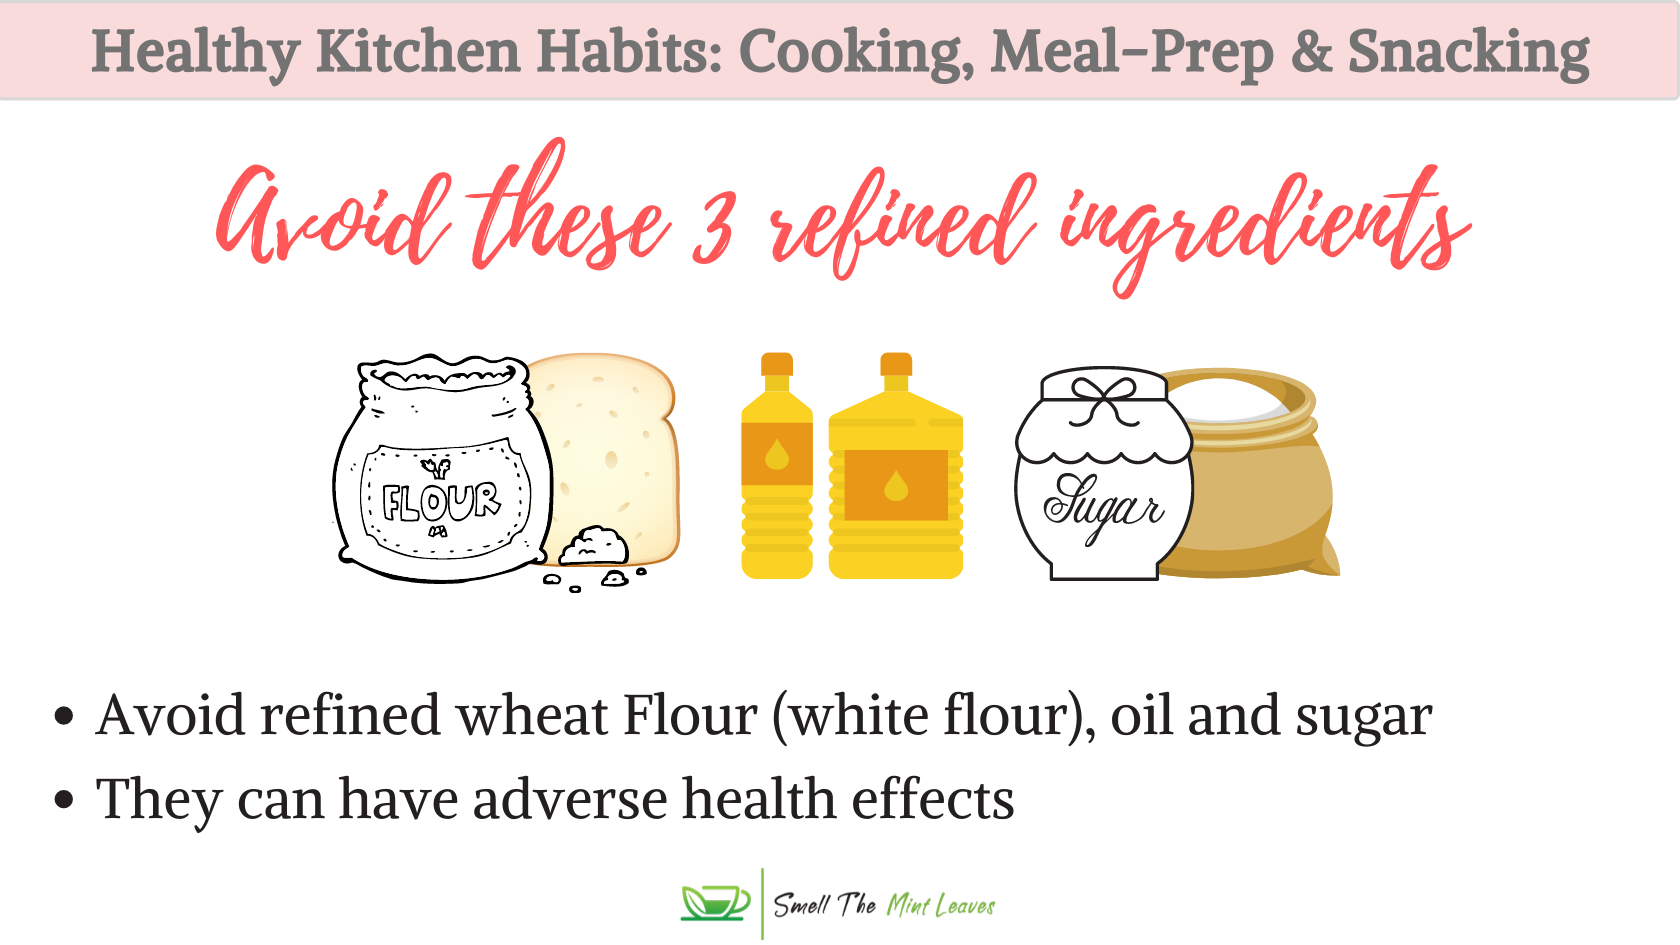 Healthy Kitchen Habits Refined Ingredients Image